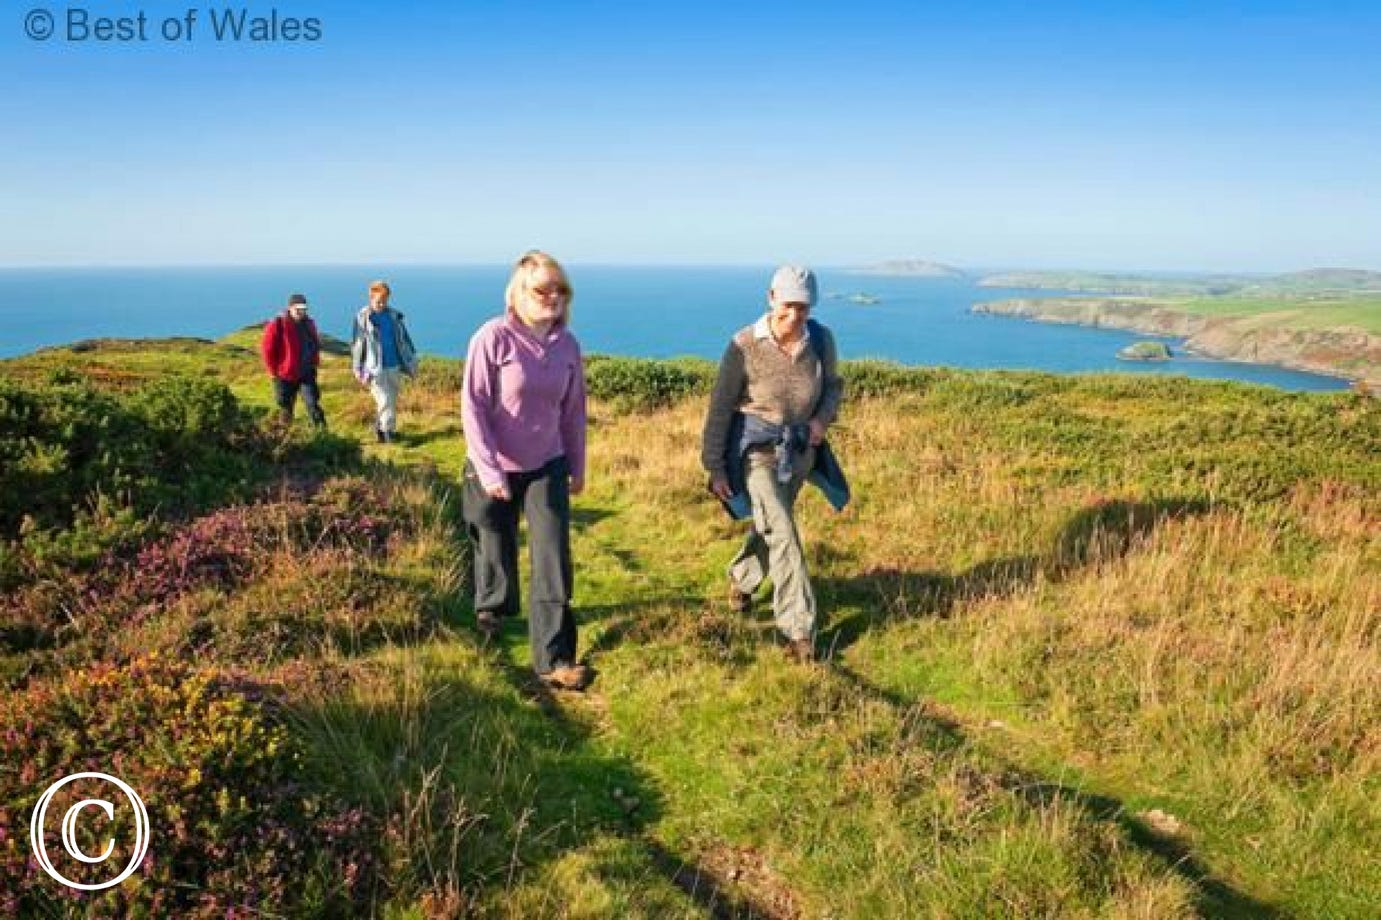 Absorb the fresh air and stunning views along the Llyn coastal path